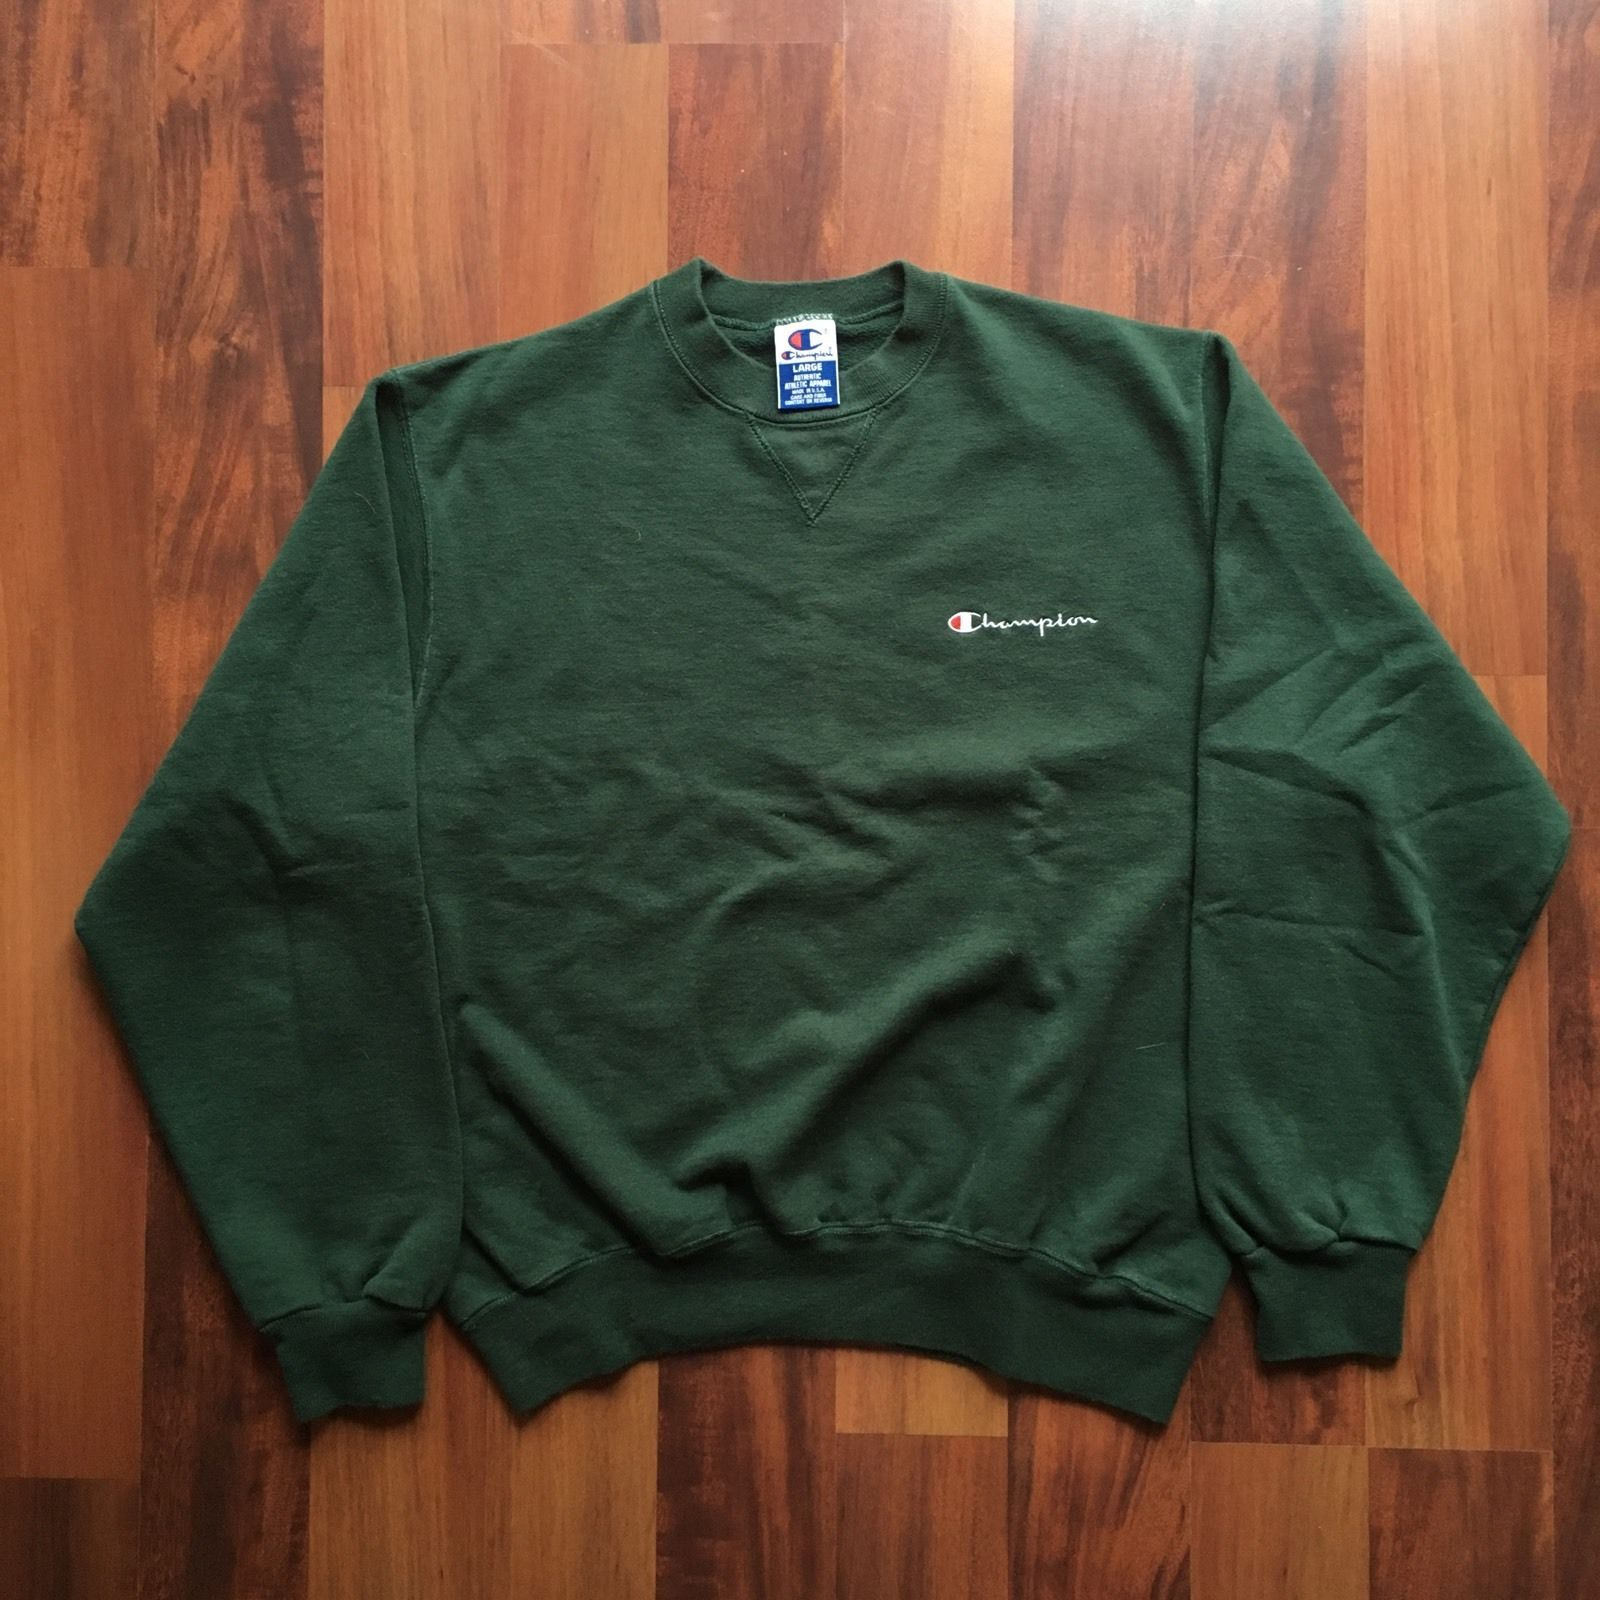 Vintage Champion Sweatshirt Spell Out Green Made In Usa Sweatshirts Champion Sweatshirt Champion Sweatshirt Vintage [ 1600 x 1600 Pixel ]